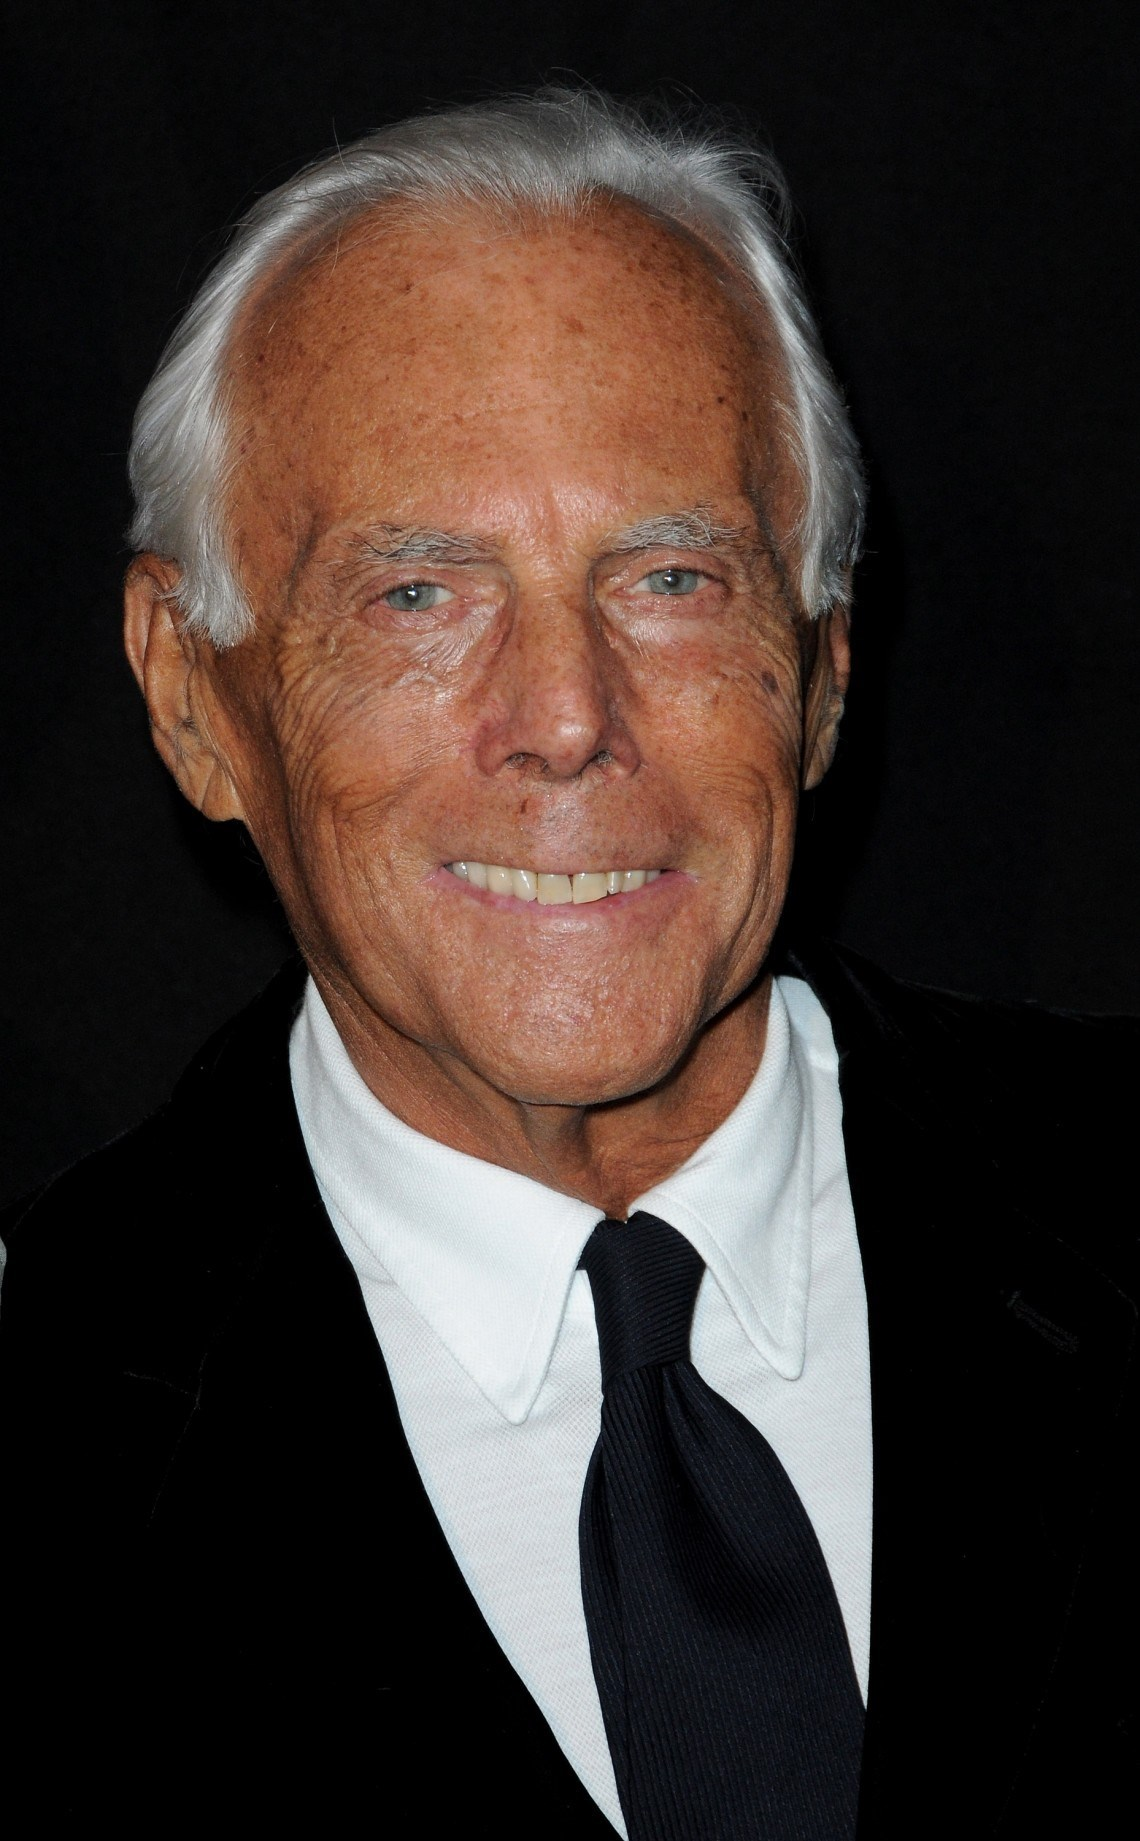 Giorgio Armani | Known people - famous people news and ... Giorgio Armani